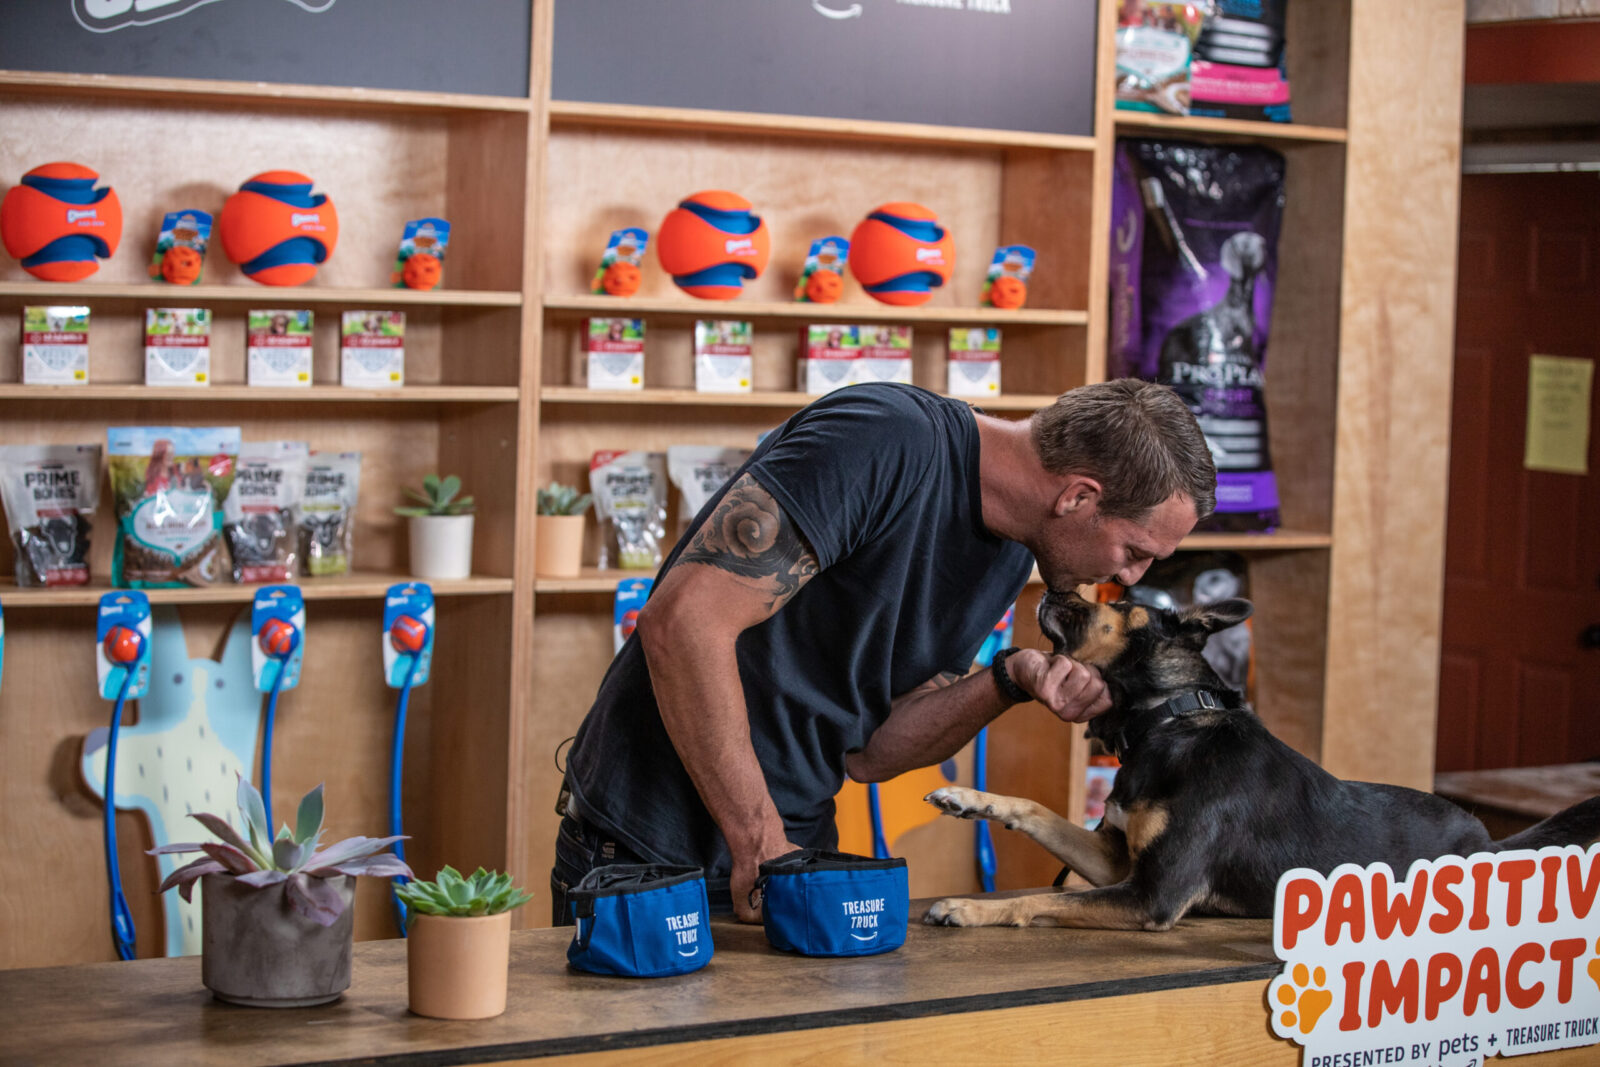 Brandon McMillan and his dog in front of the pawsitive impact experiential design